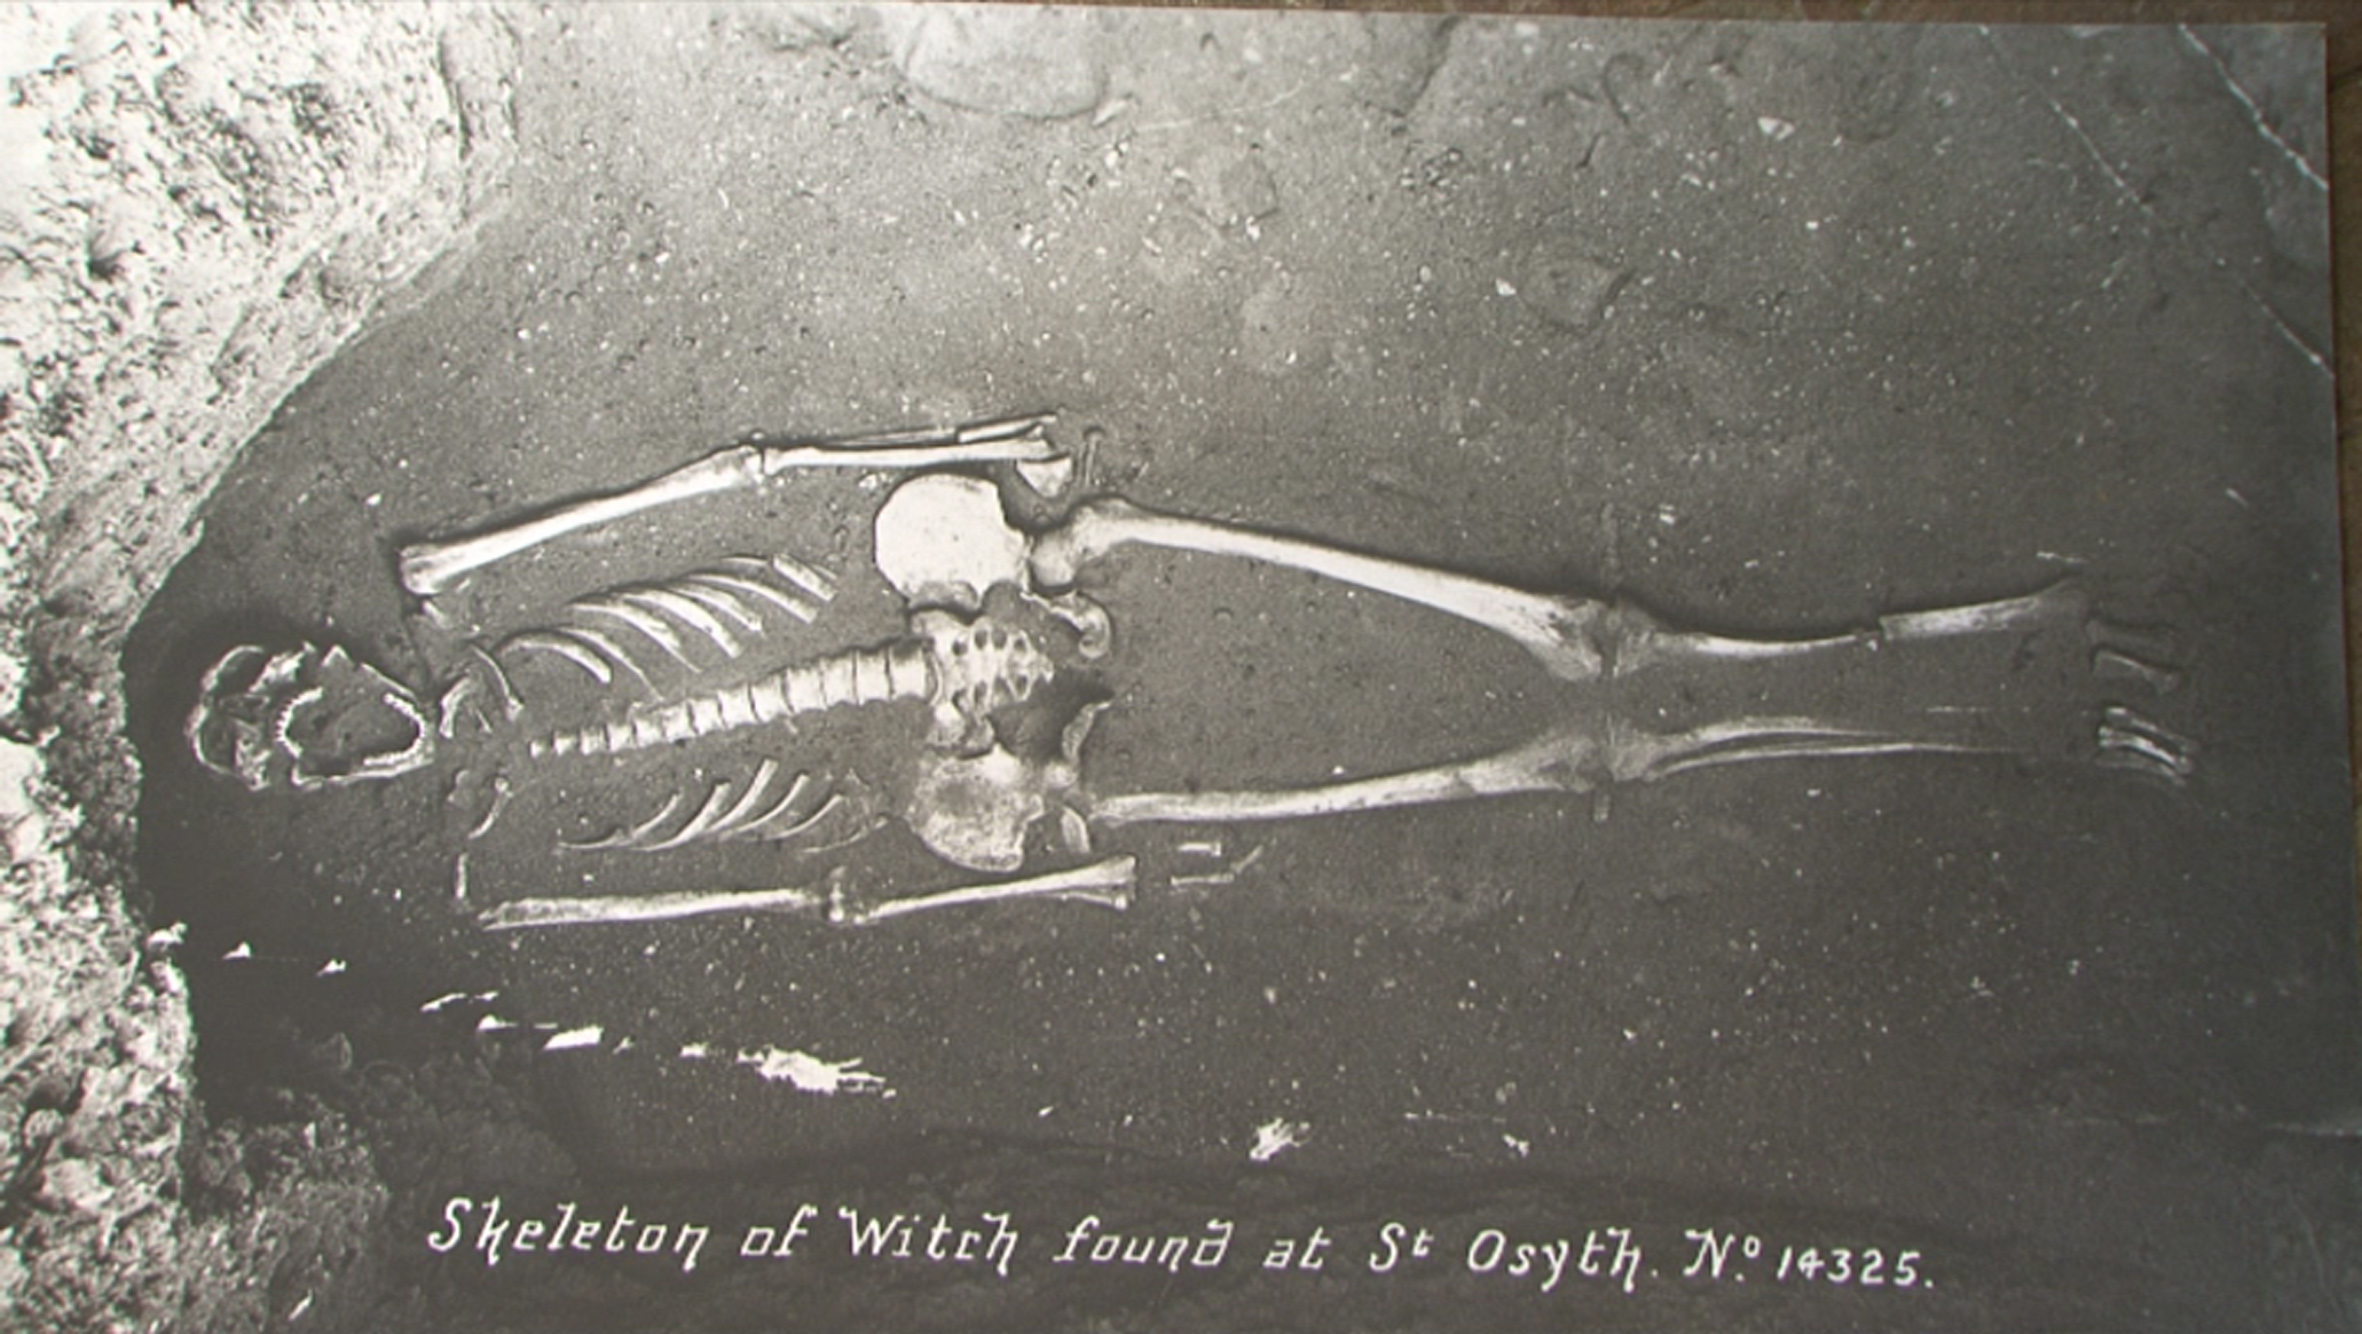 The St. Osyth Witches